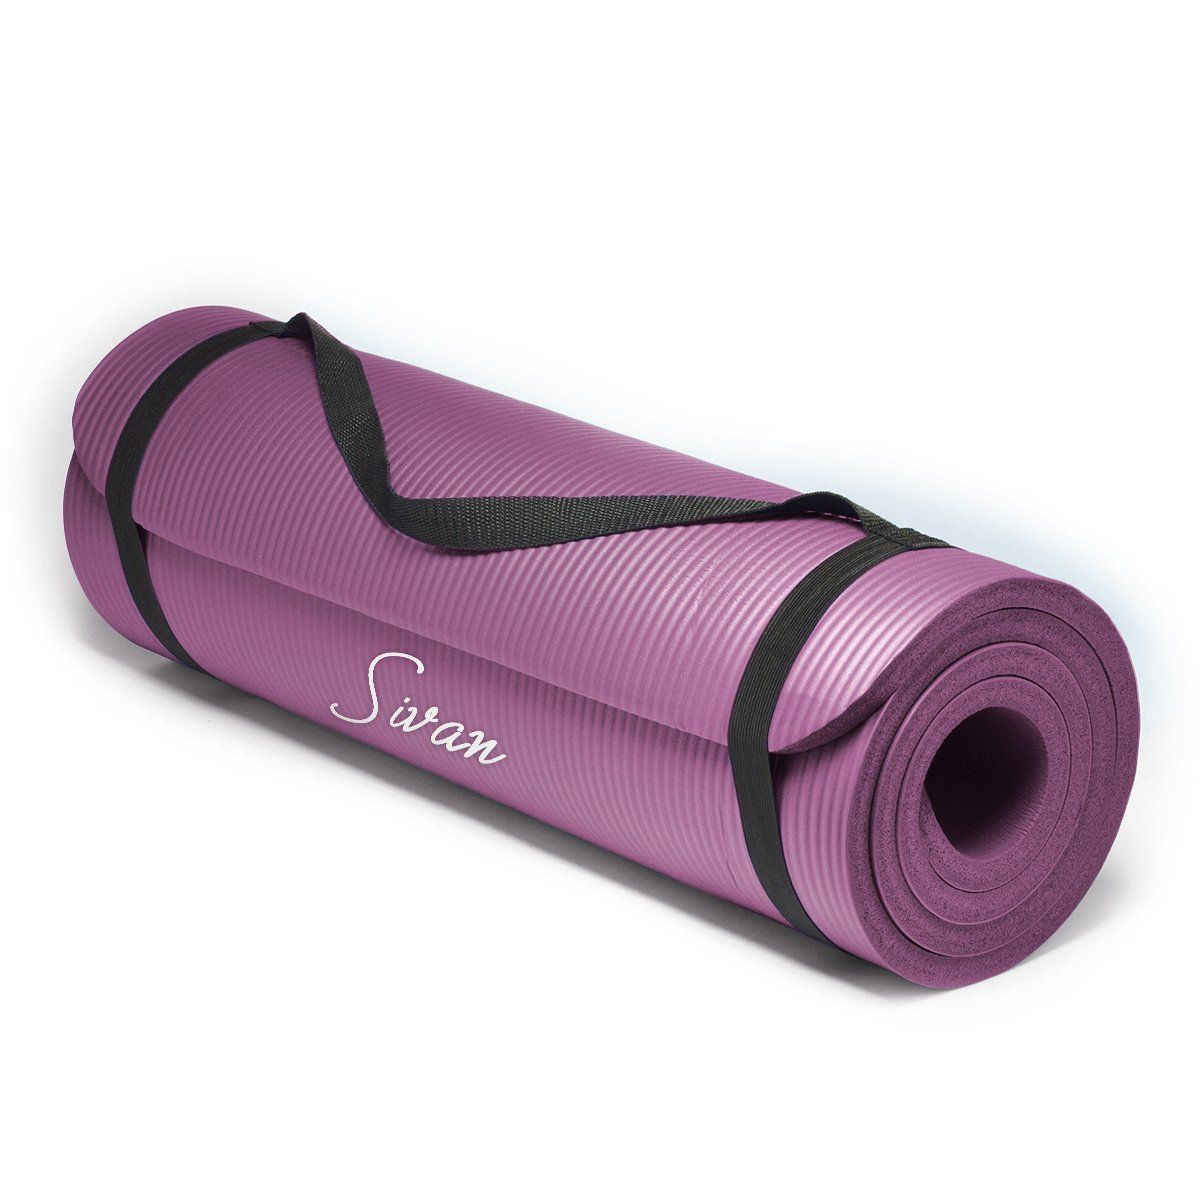 Amazon Com Sivan Health And Fitness 1 X2f 2 Inchextra Thick 71 Inch Long Nbr Comfort Foam Yoga Mat For Exercise Yoga A Yoga Mat Health Fitness Mat Pilates